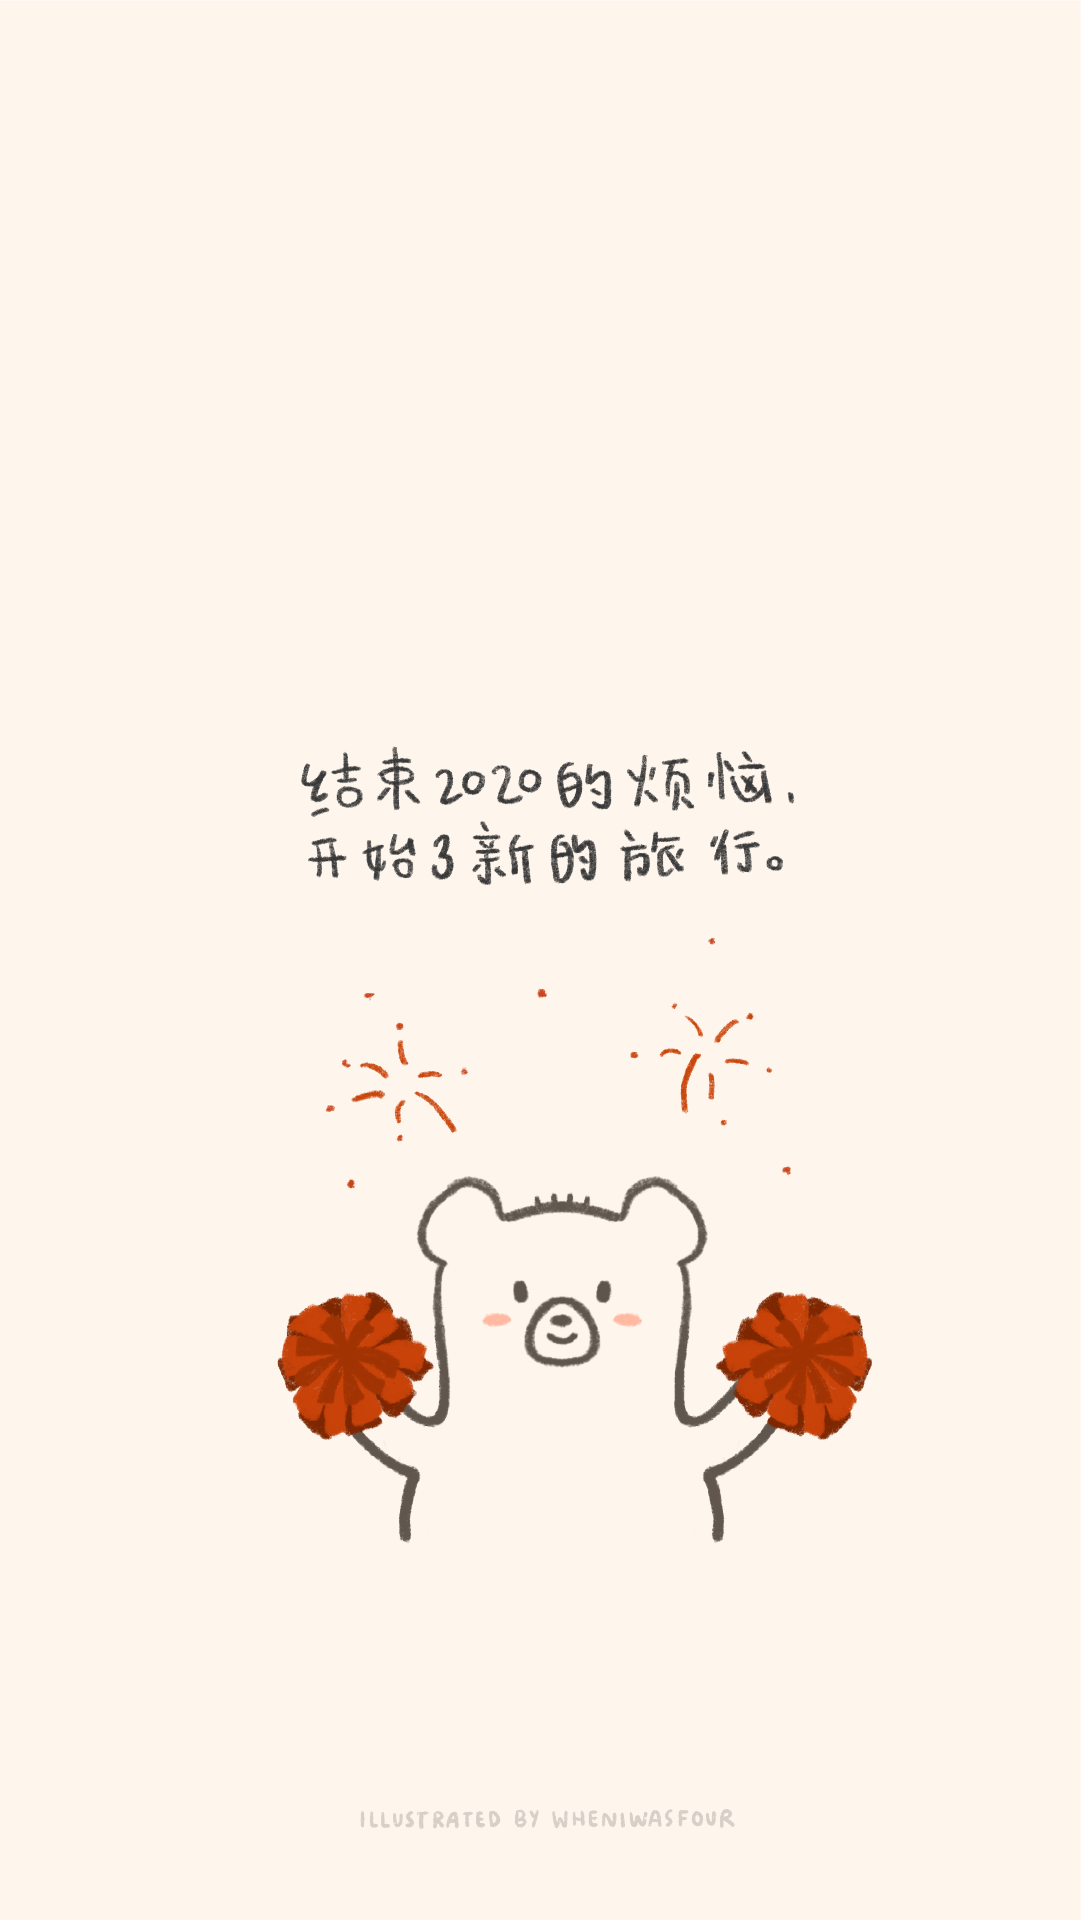 phone wallpaper of a digital illustration of chinese quote about new year new day new journey with a bear holding pom poms and fireworks